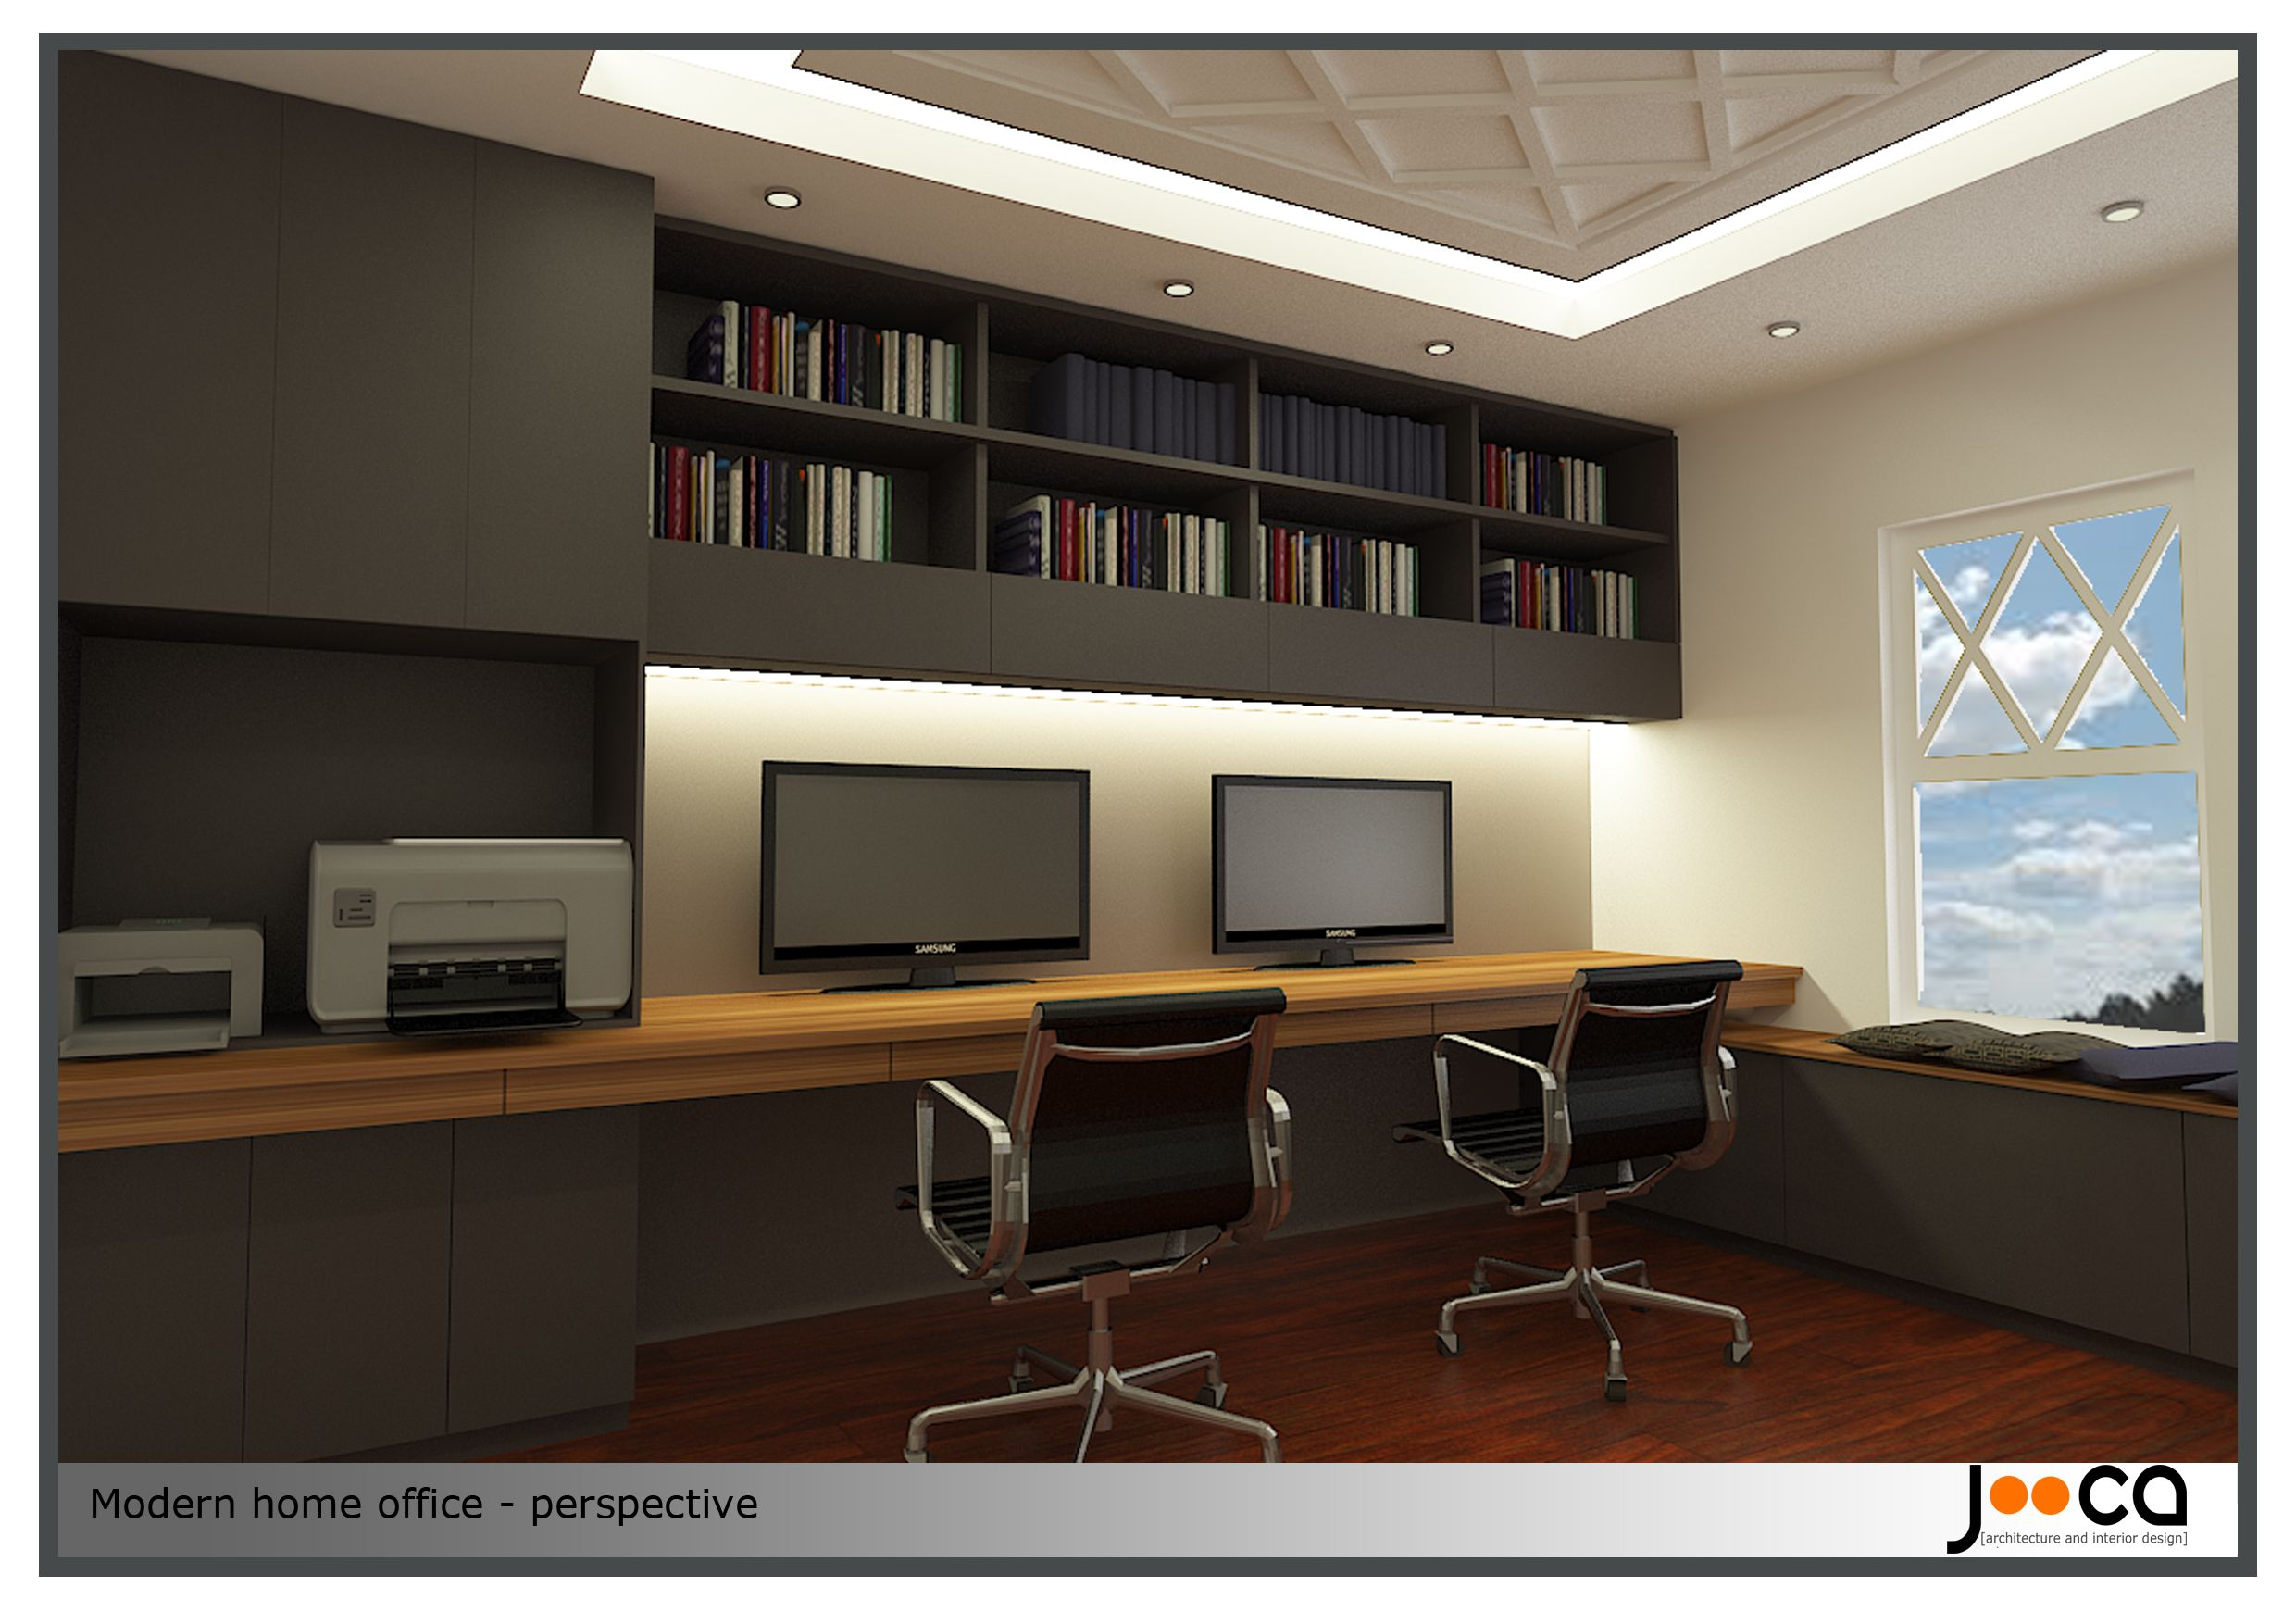 Contemporary office home office design project designed by jooca studio modern home glubdub - Modern home office floor plans for a comfortable home office ...